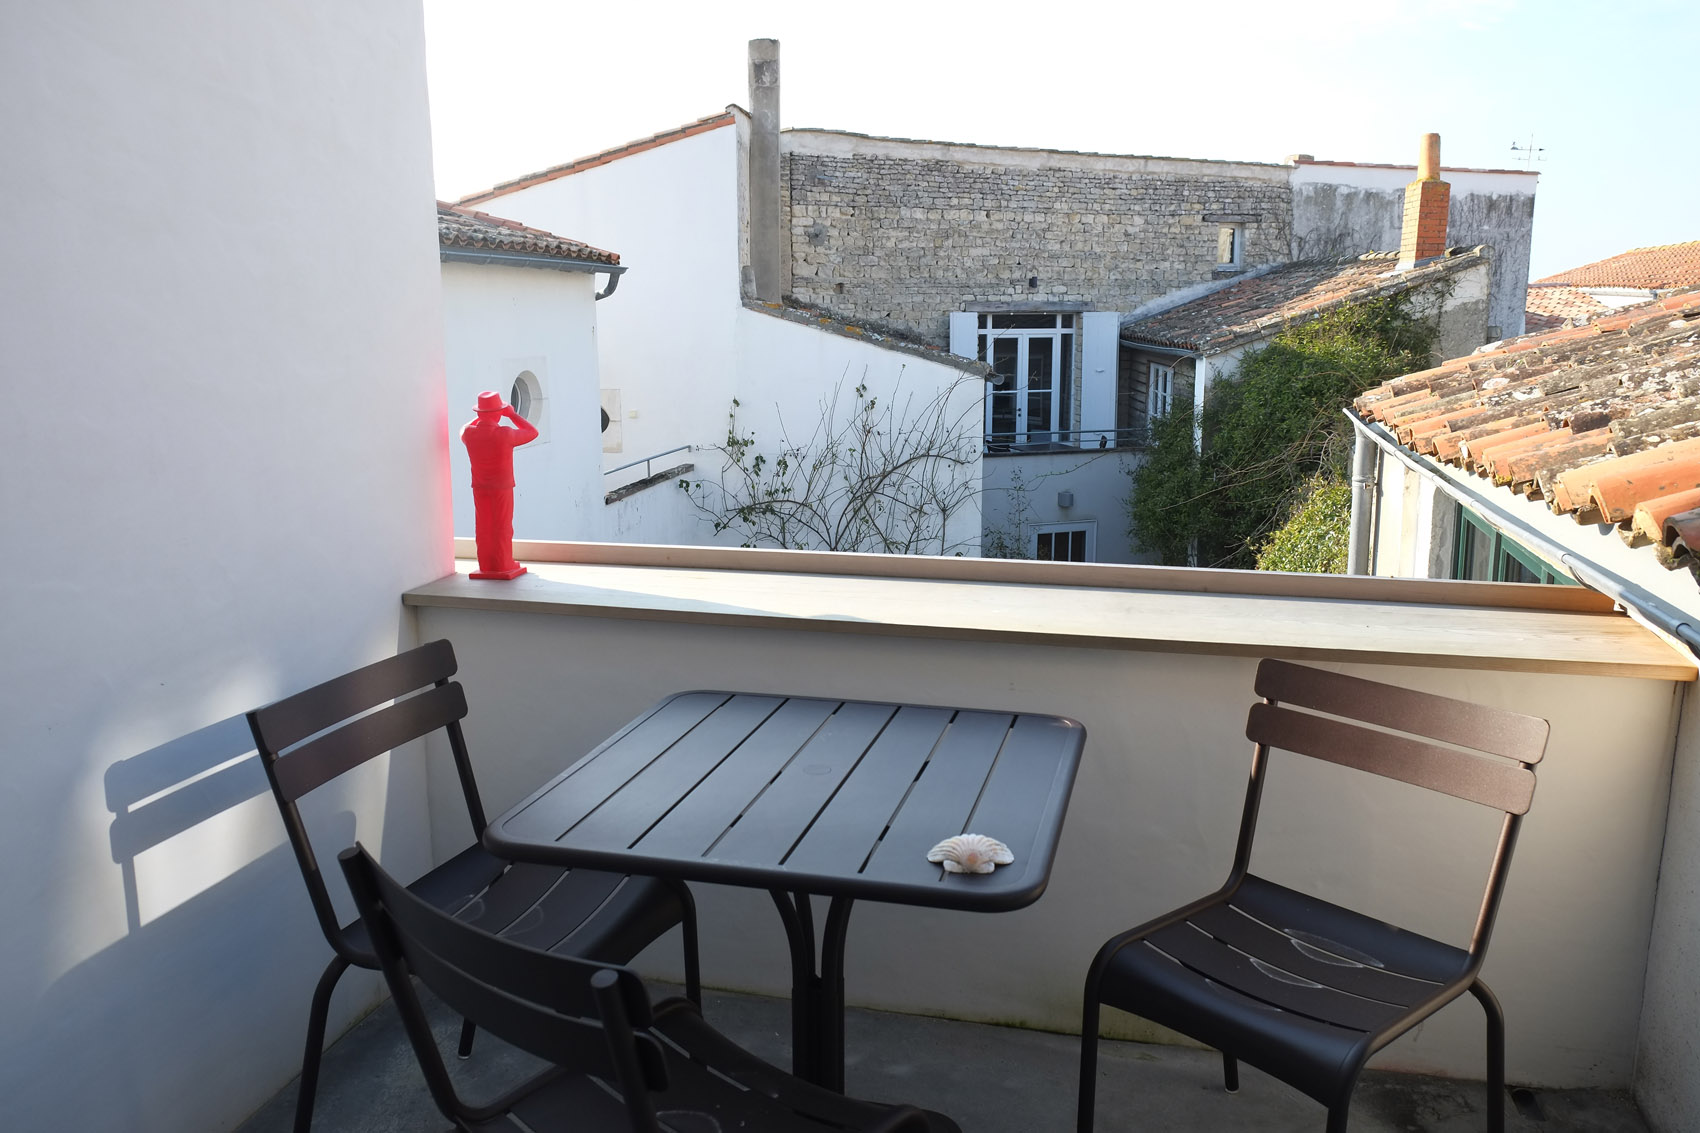 Balcony with view of Ars en Ré - Hotel Le Senechal